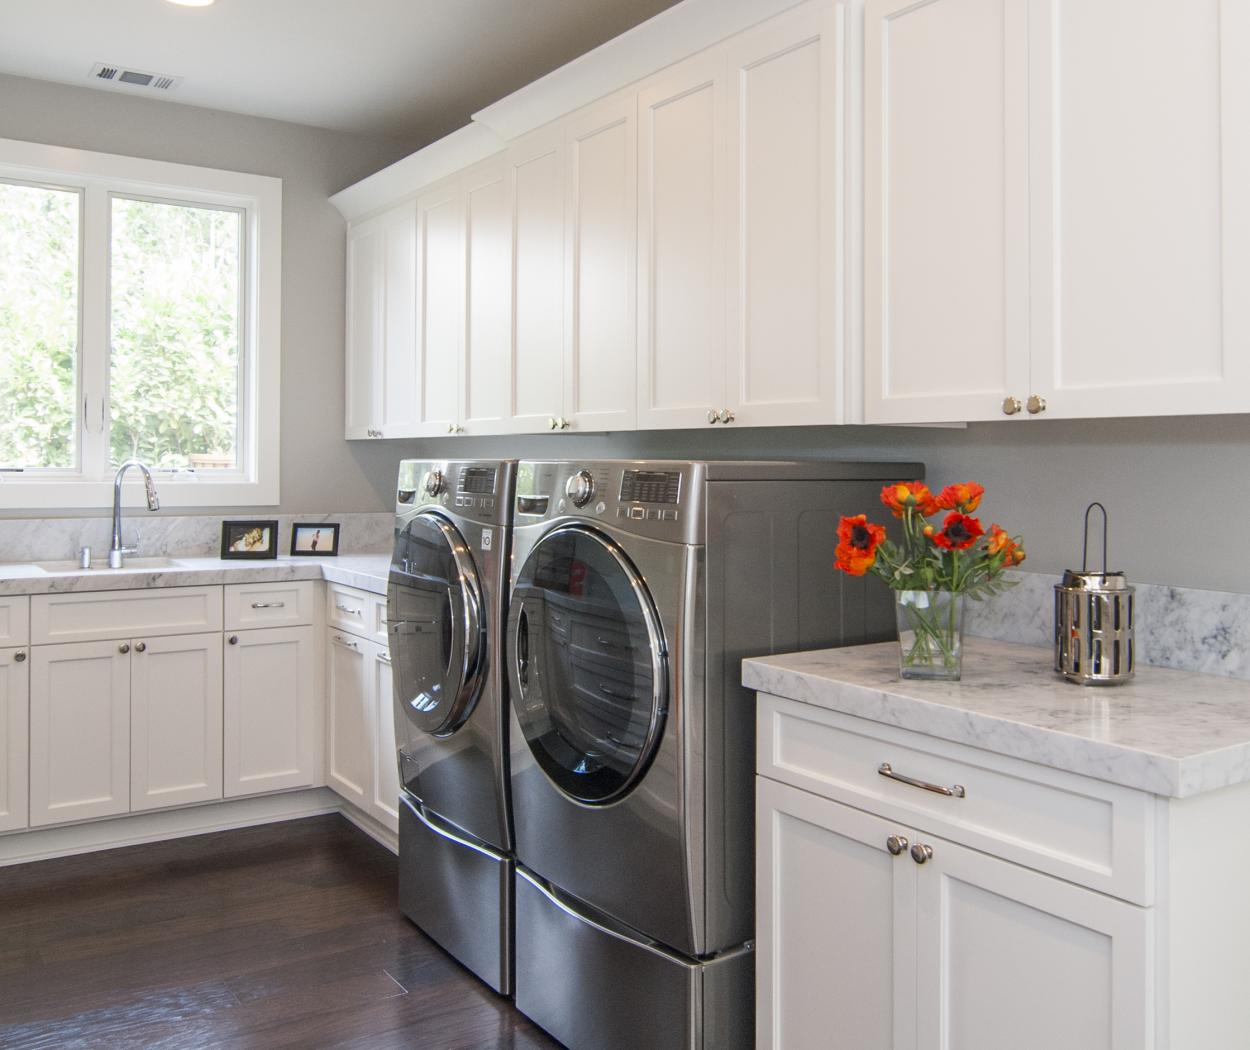 Beautiful Transitional White Laundry Room Cabinets with Marble Counter Tops and an LG Washer - Dryer